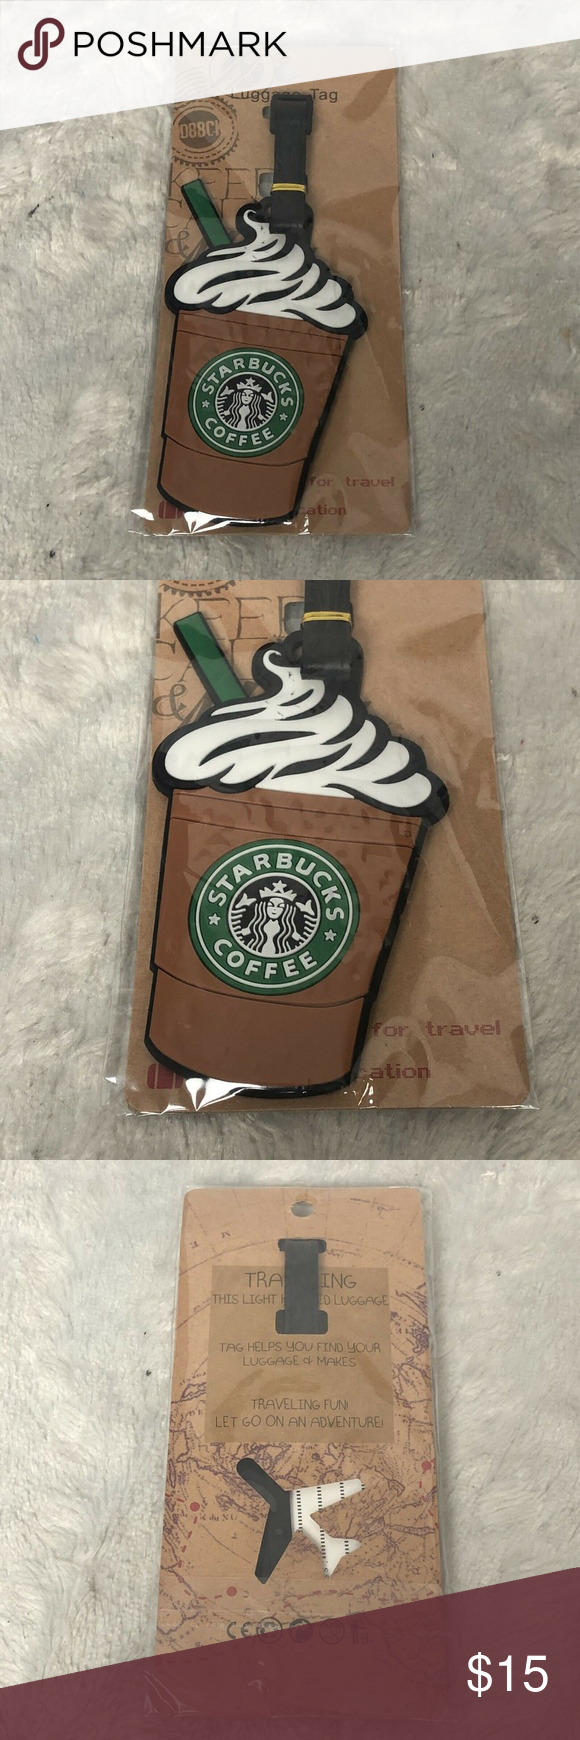 New Starbucks Frappuccino Luggage Tag New New Starbucks Frappuccino Luggage Tag SH1:101803 Starbucks Other #starbucksfrappuccino New Starbucks Frappuccino Luggage Tag New New Starbucks Frappuccino Luggage Tag SH1:101803 Starbucks Other #starbucksfrappuccino